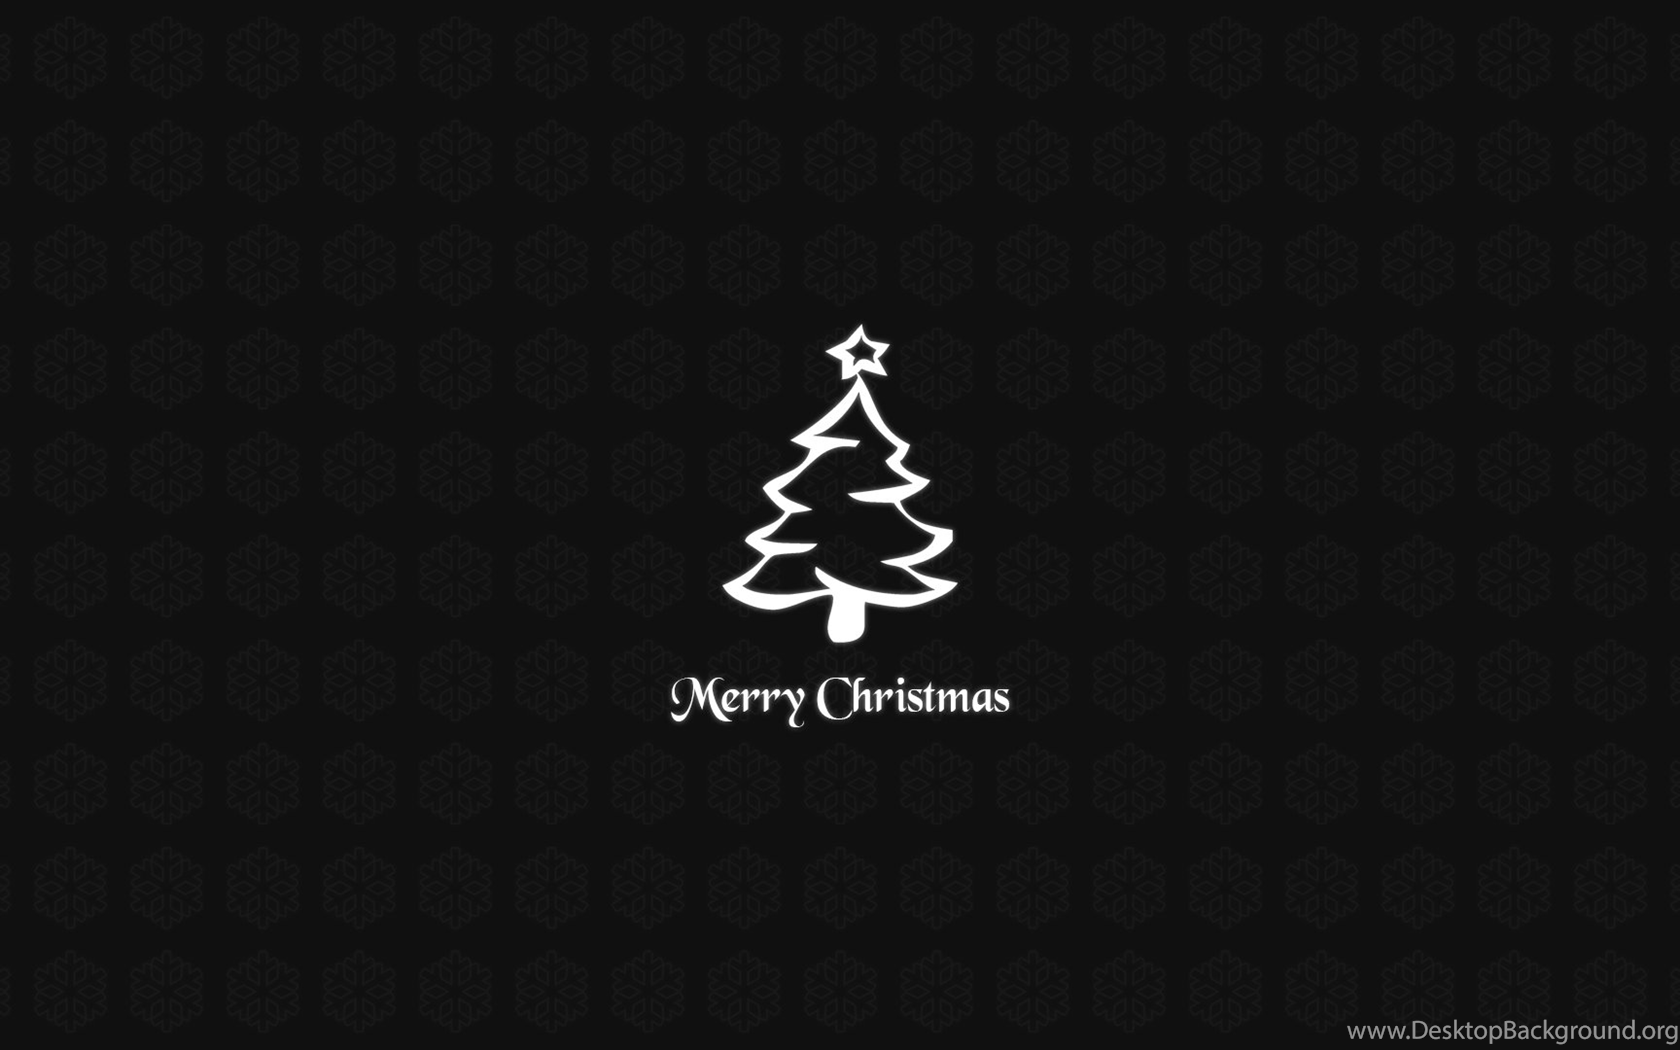 Simple Christmas Wallpapers 1920x1080 By Syntheticarts On